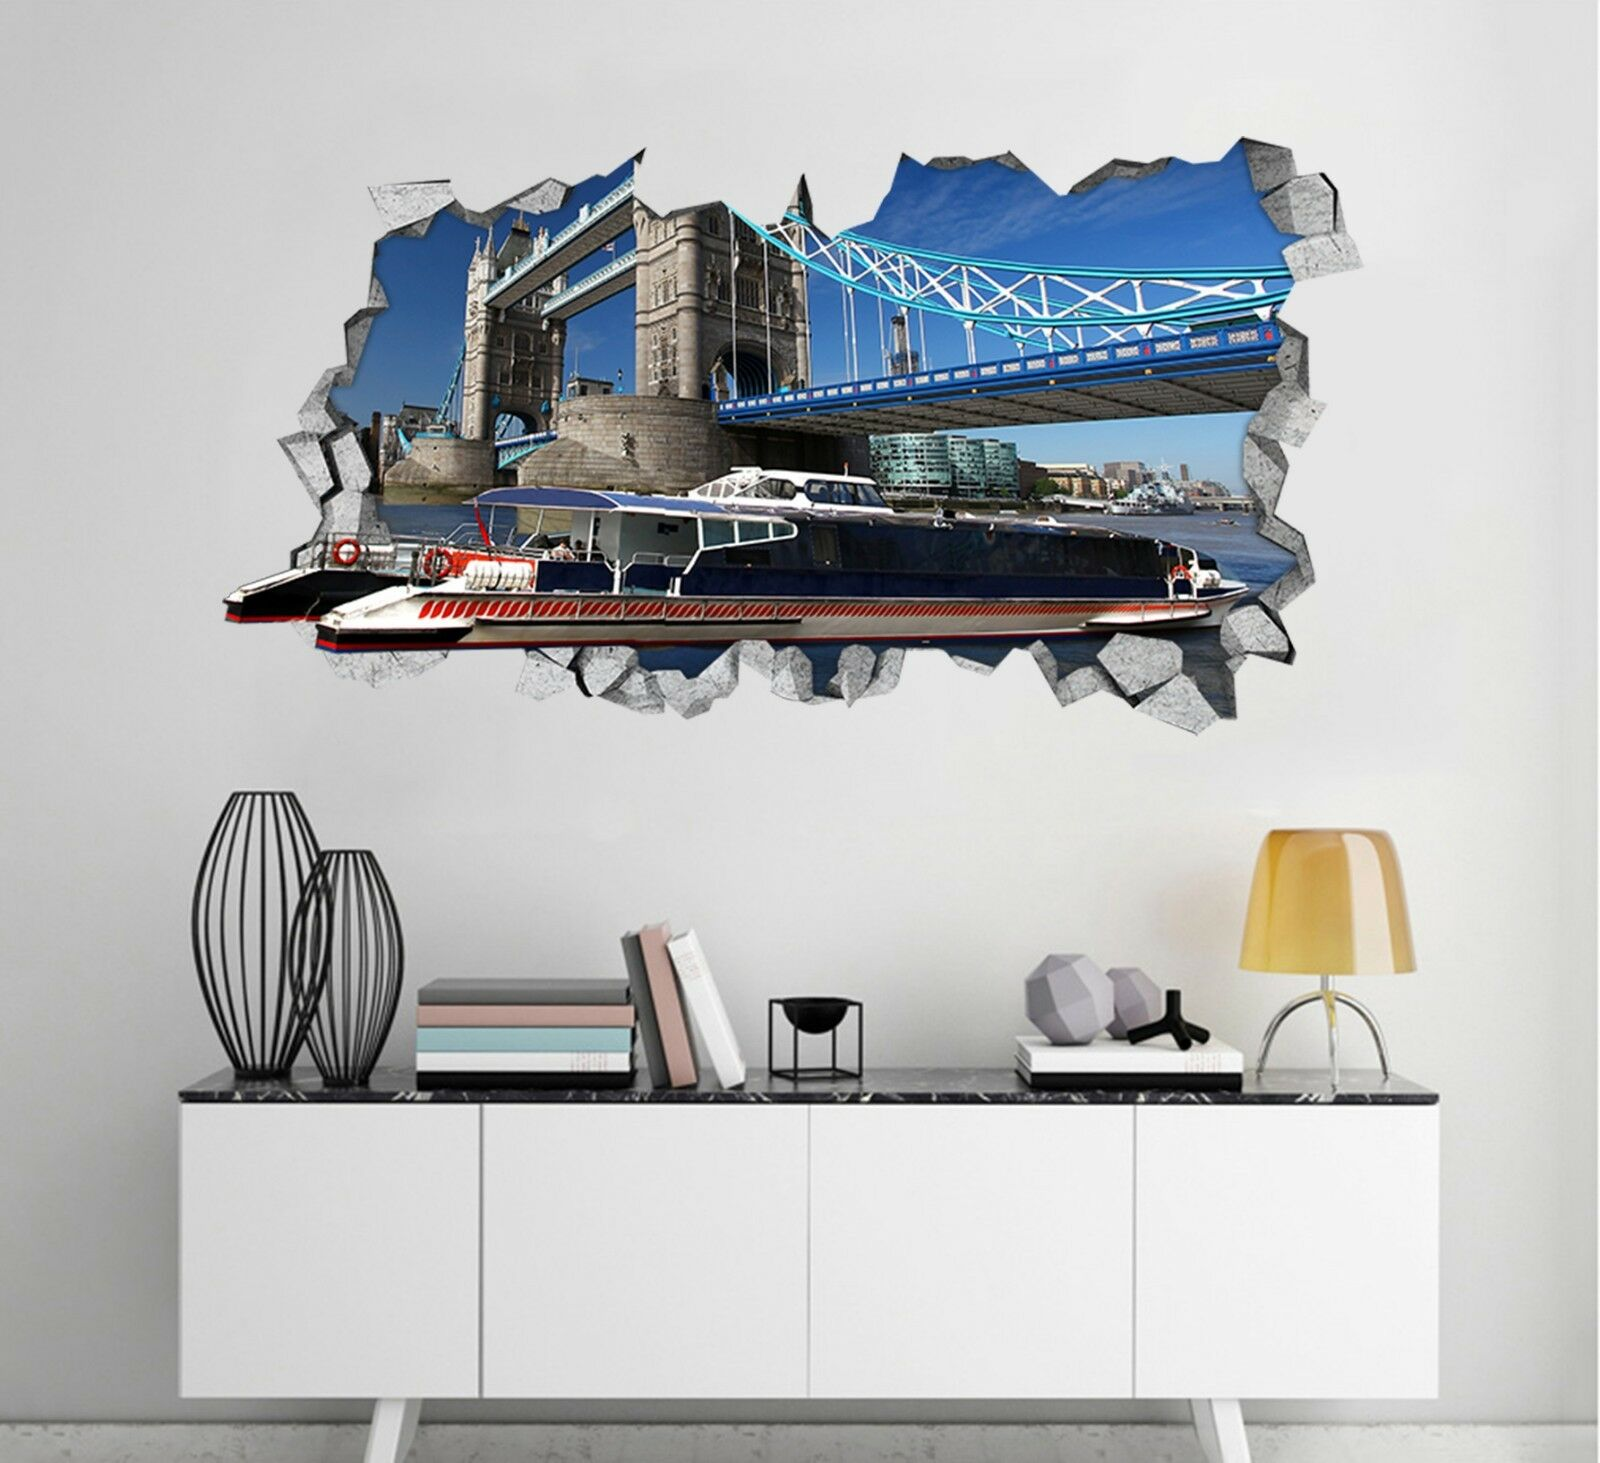 3D Ponte Di Londra 301 Parete Murales Adesivi Decal Sfondamento AJ WALLPAPER IT